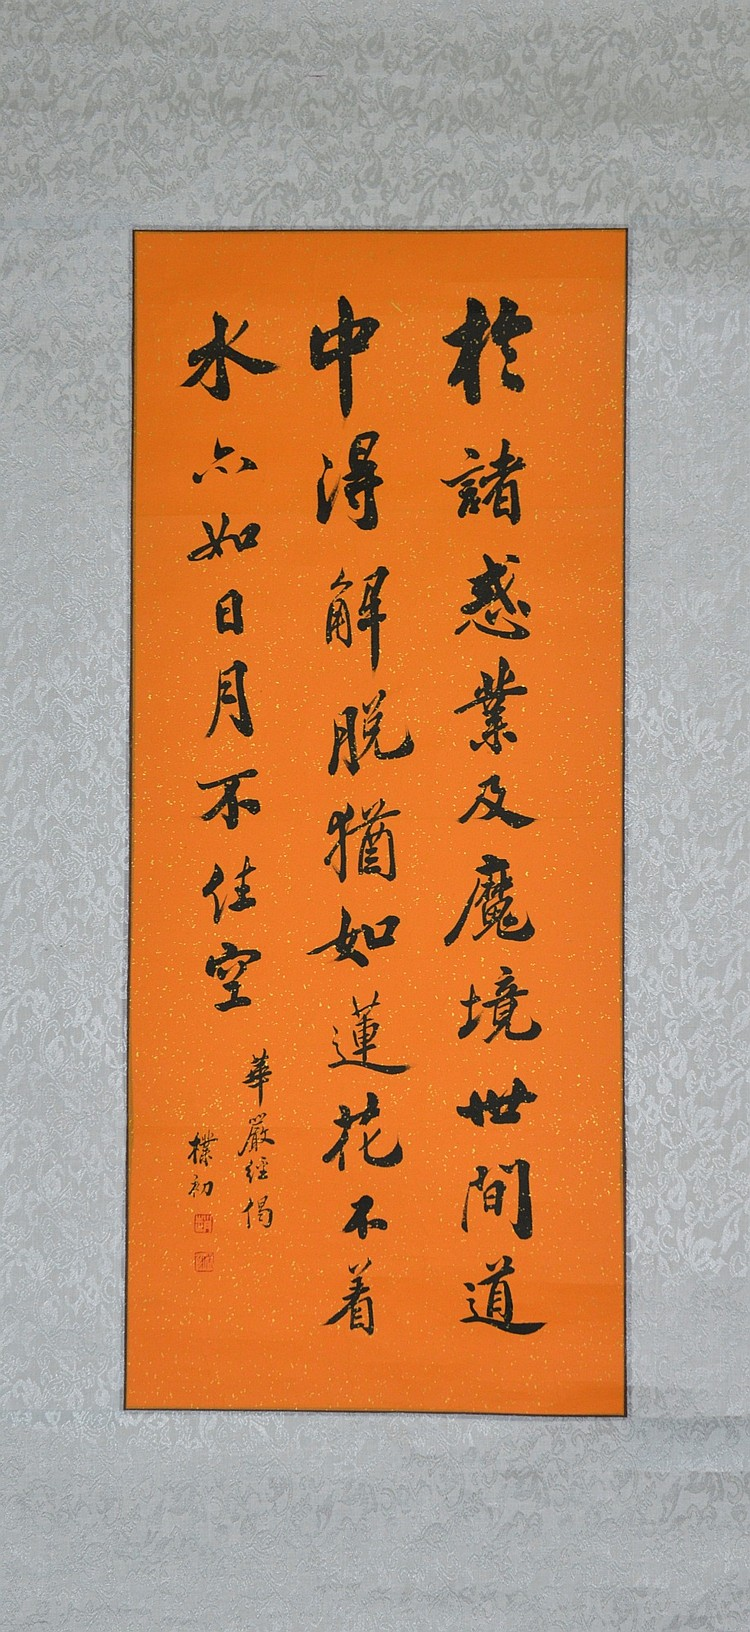 Chinese Script Calligraphy on Paper